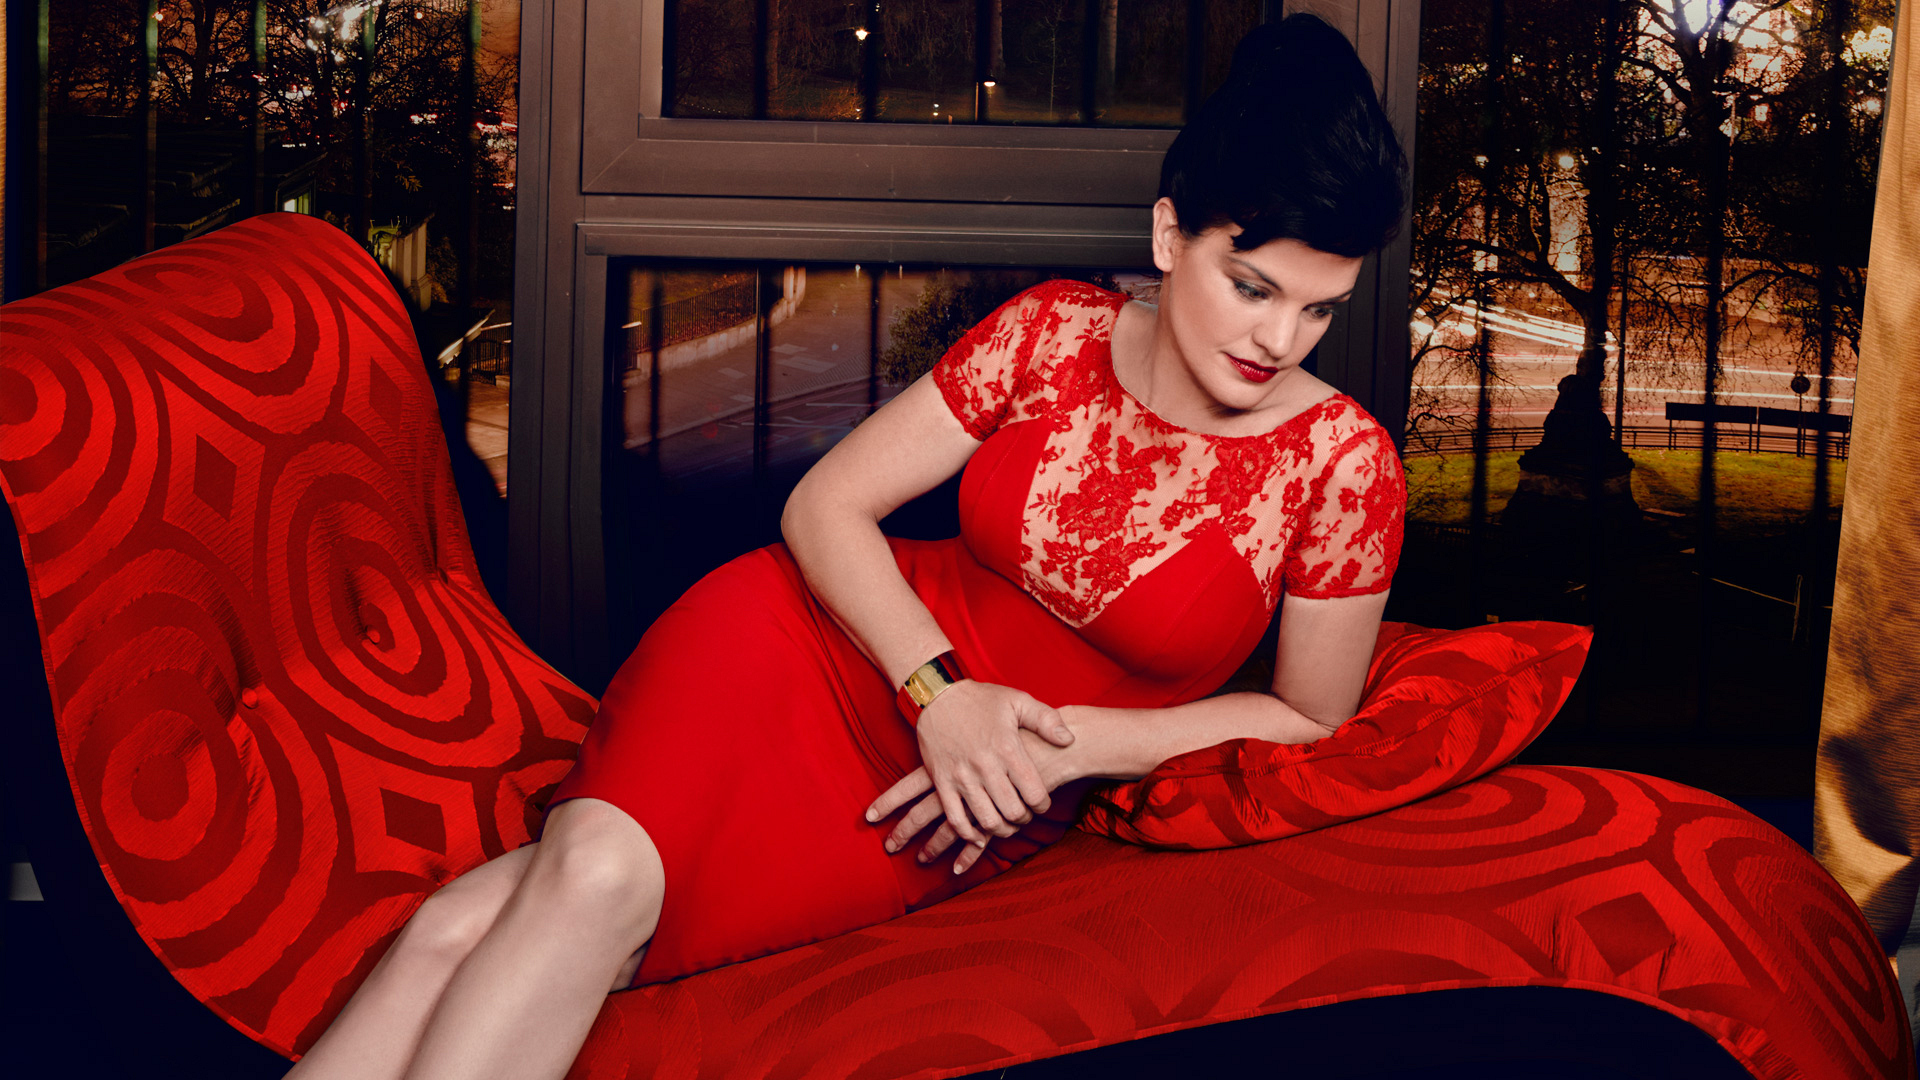 Pauley Perrette always makes our hearts skip a beat